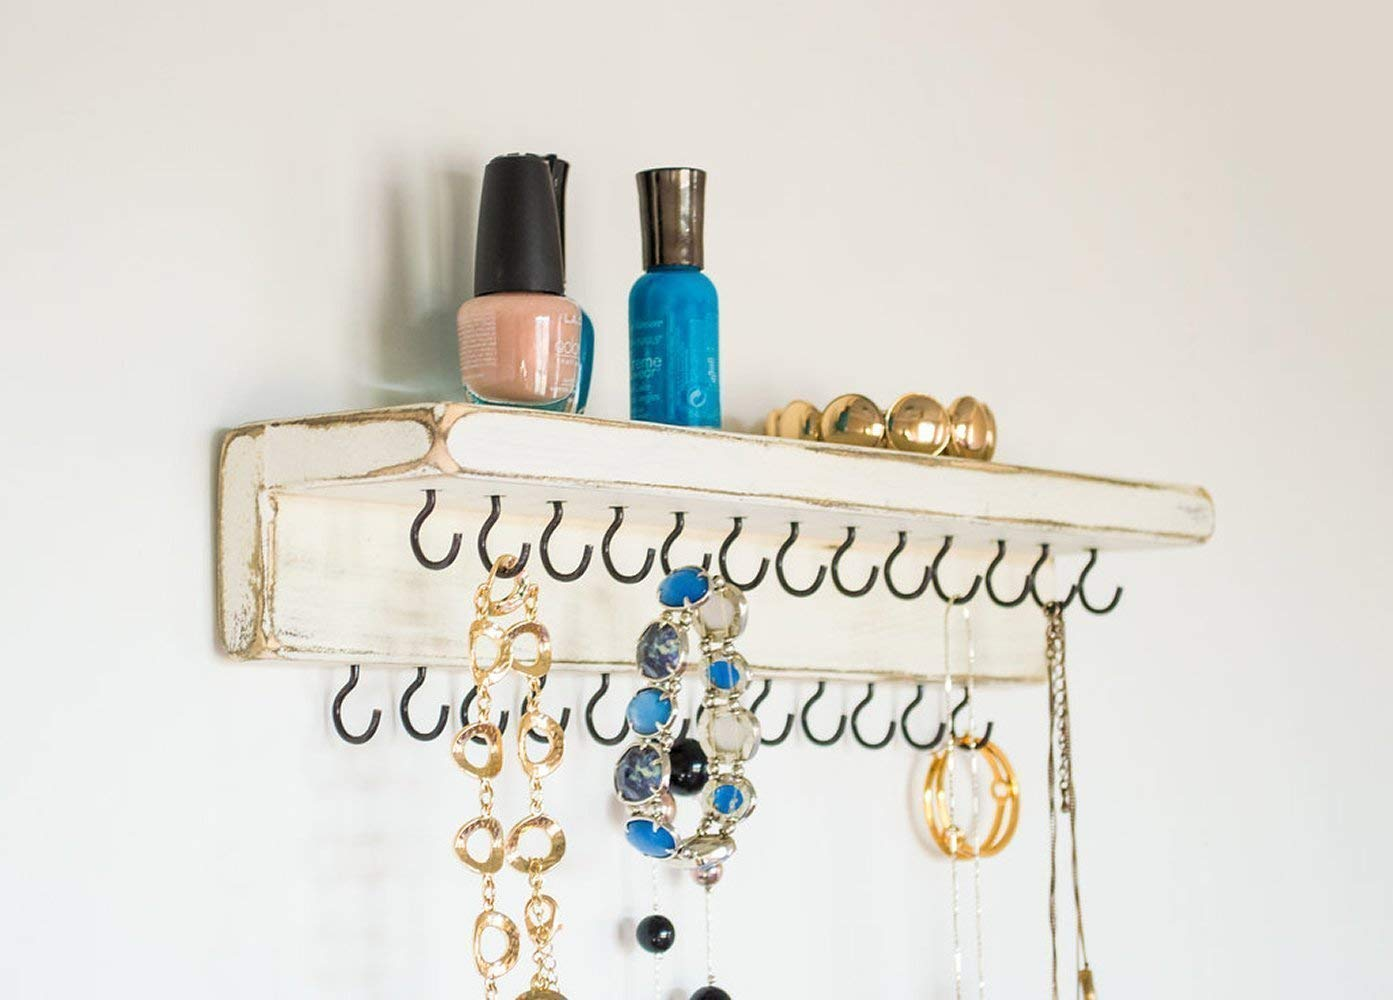 Jewelry Organizer by Out Back Craft Shack: Wall Necklace Holder with Shelf & 25 hooks; Rustic Antique White